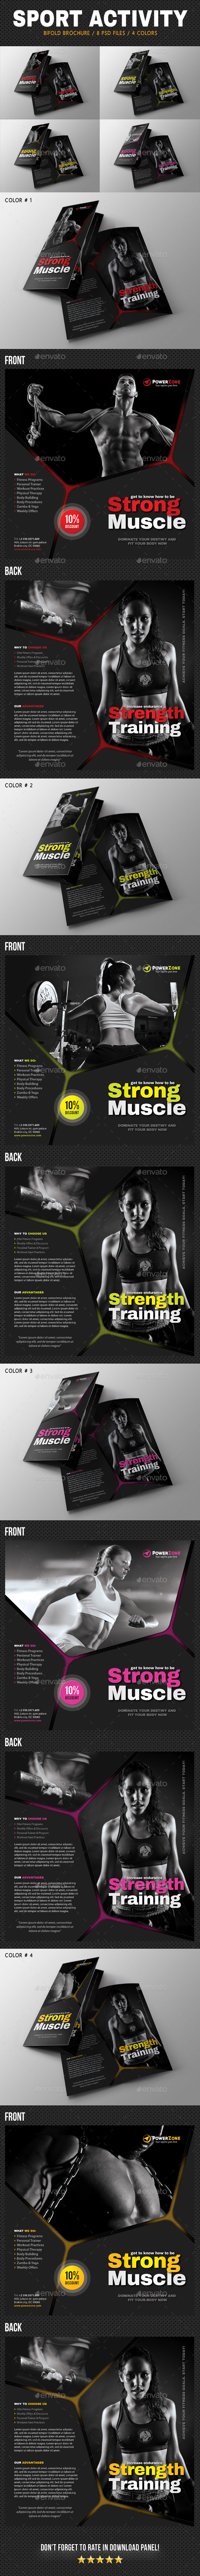 Sport Activity Bifold Brochure 04 - Brochures Print Templates